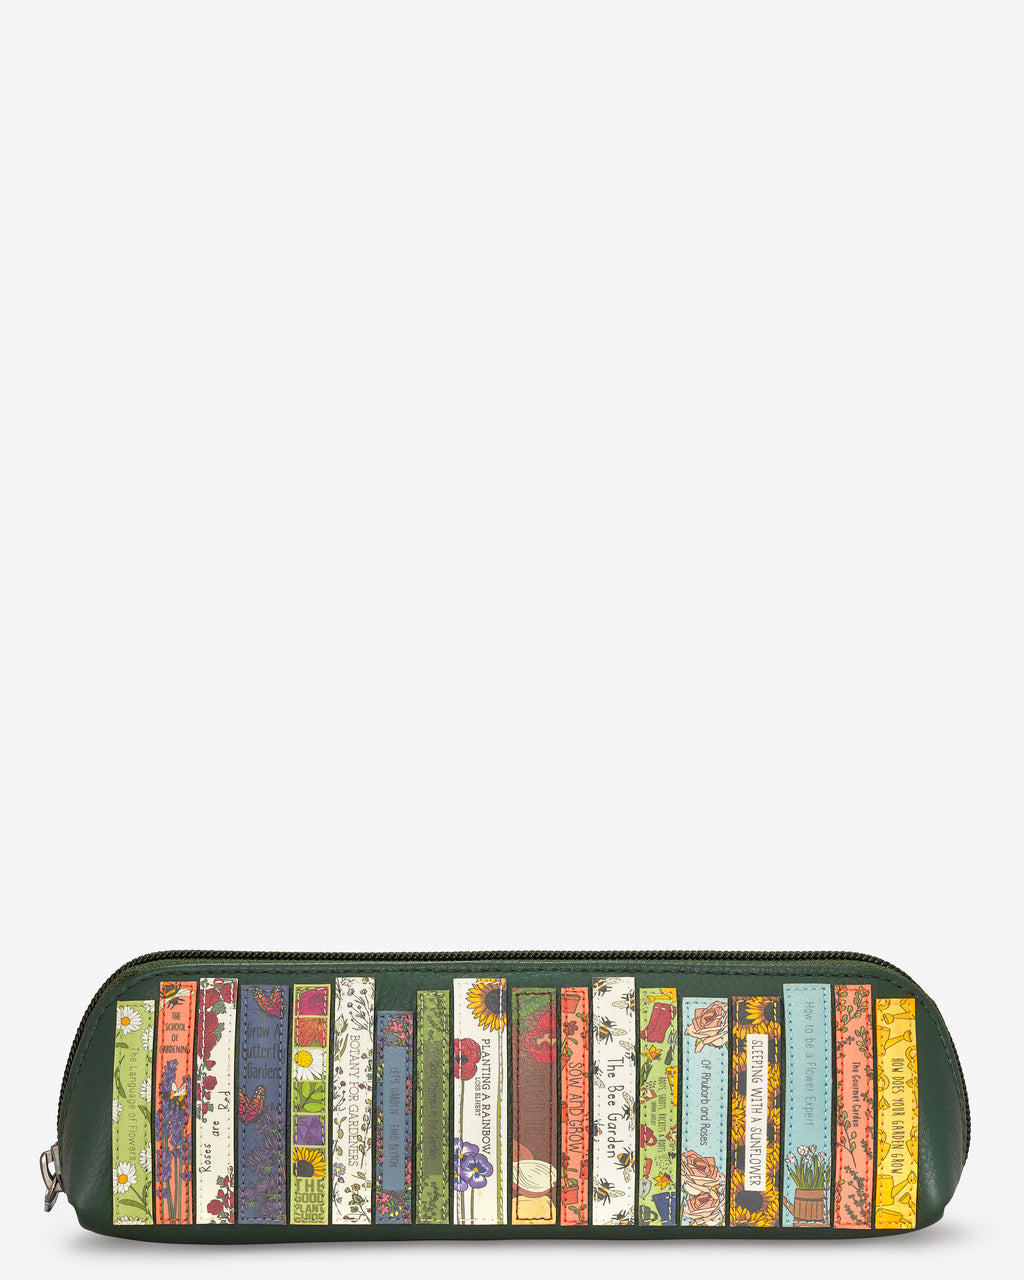 Green Fingers Bookworm Library Zip Top Leather Pouch Pencil Case